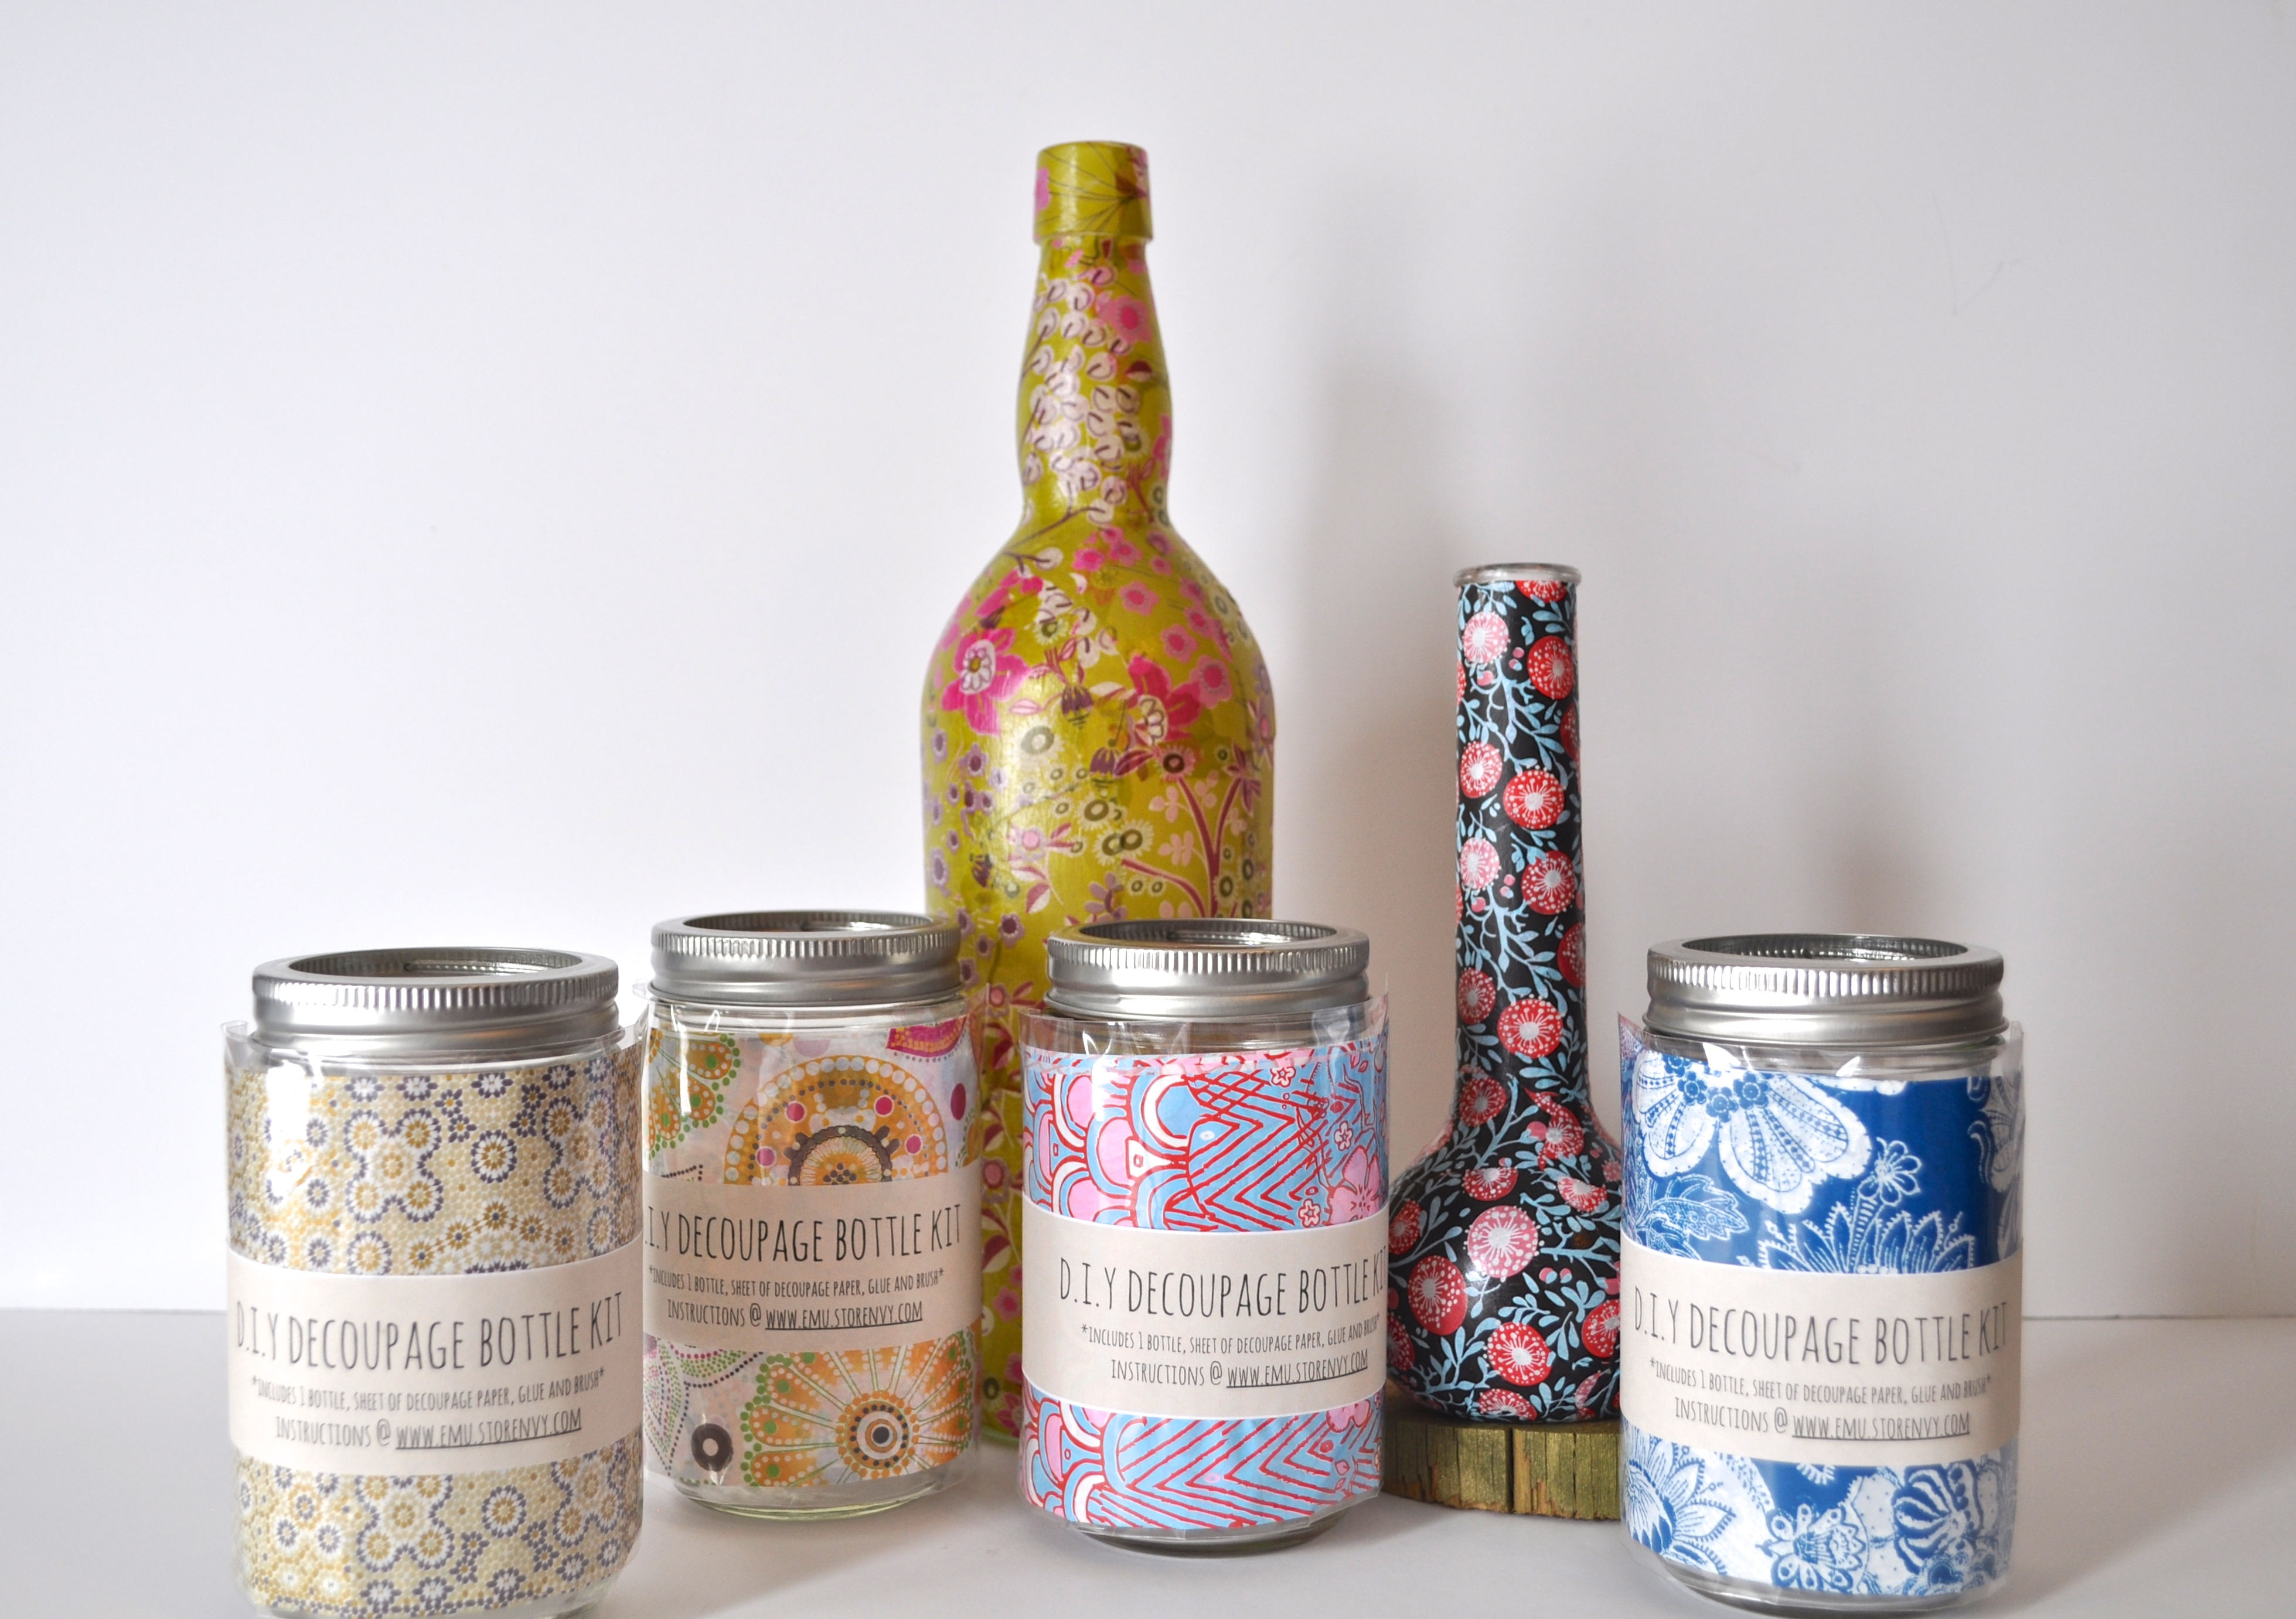 Decoupage bottles with their own hands